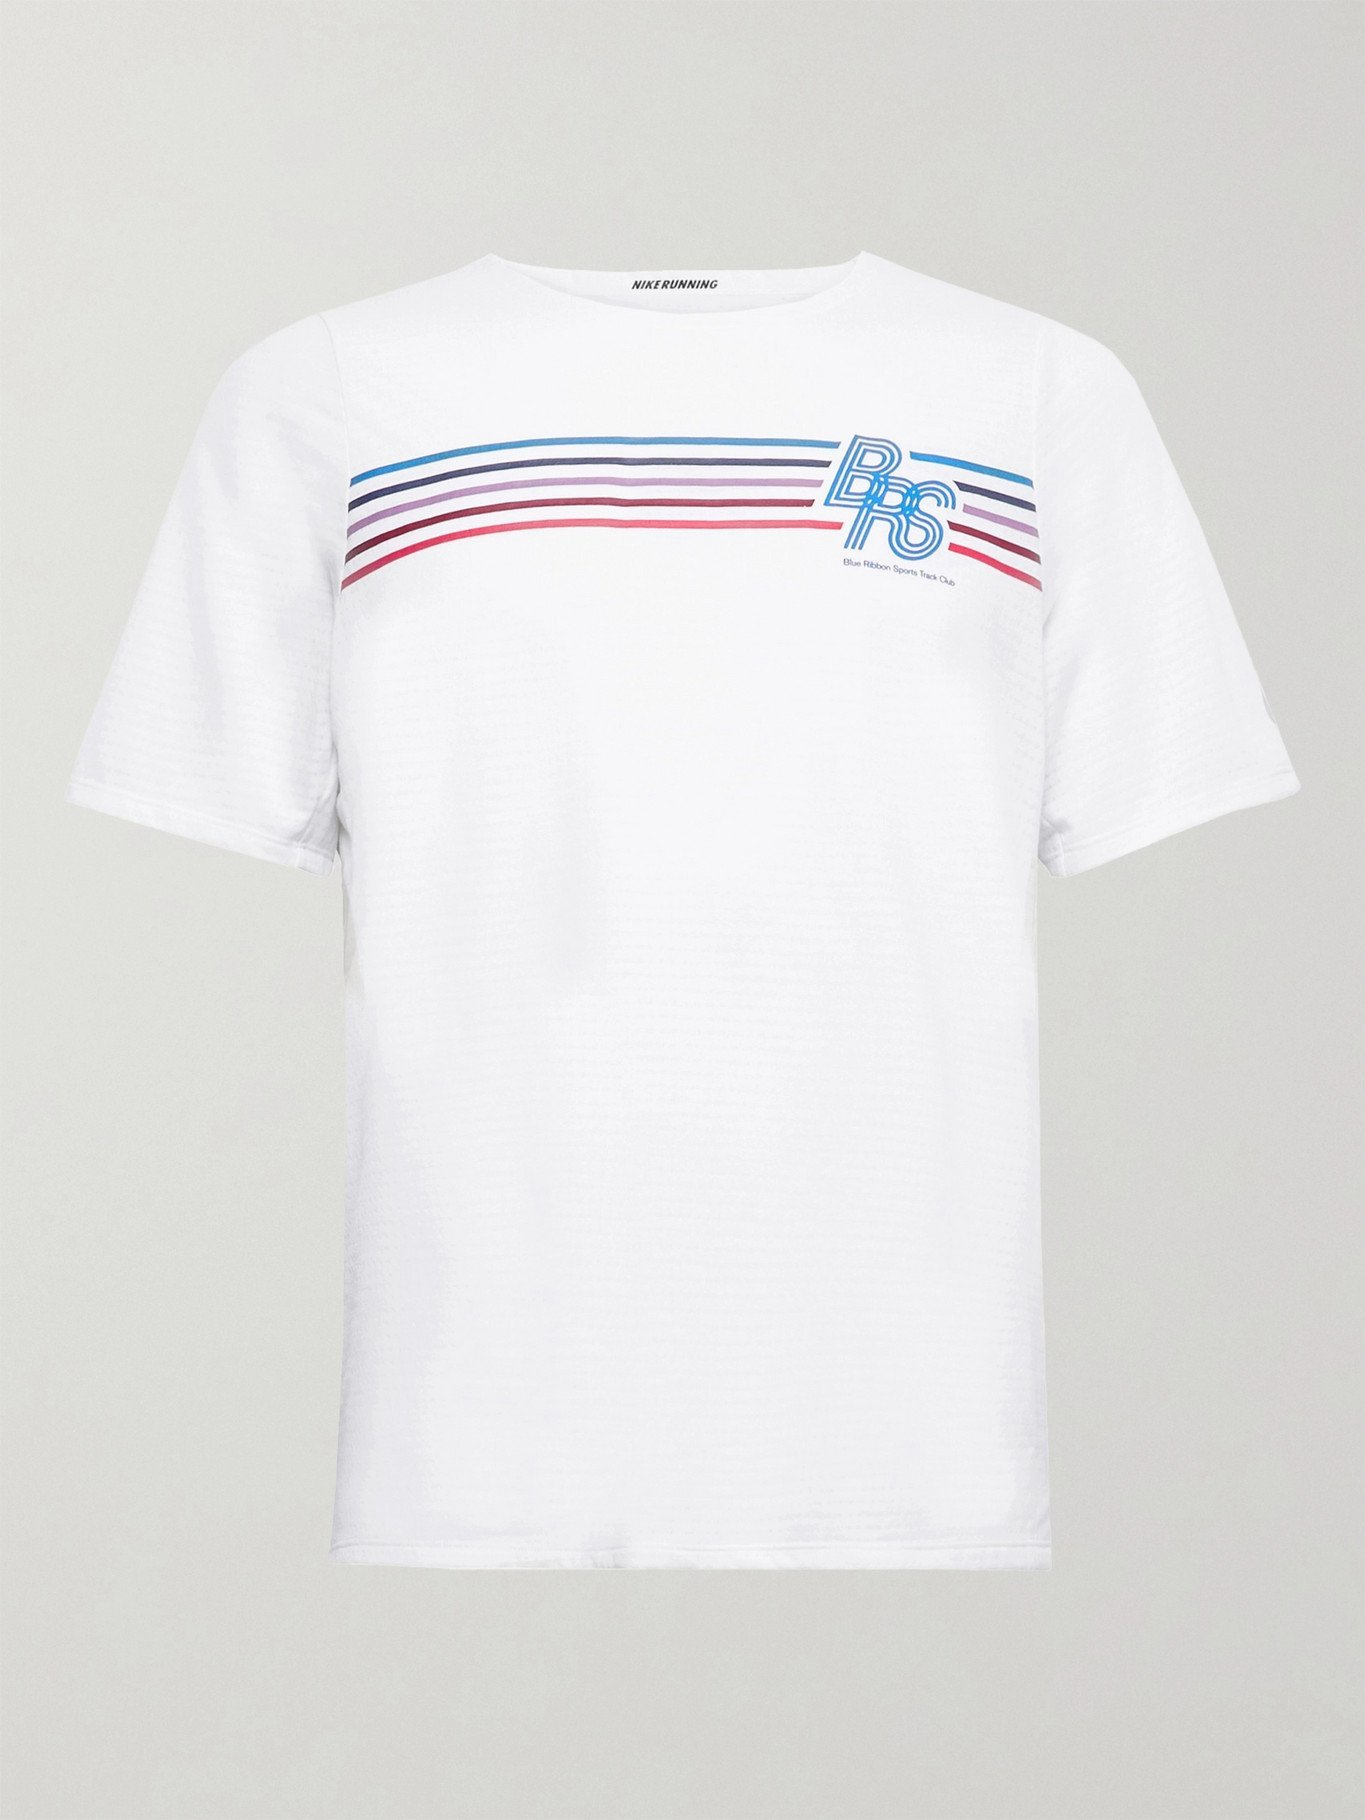 Nike Running - Rise 365 BRS Printed Perforated Dri-FIT T-Shirt - White